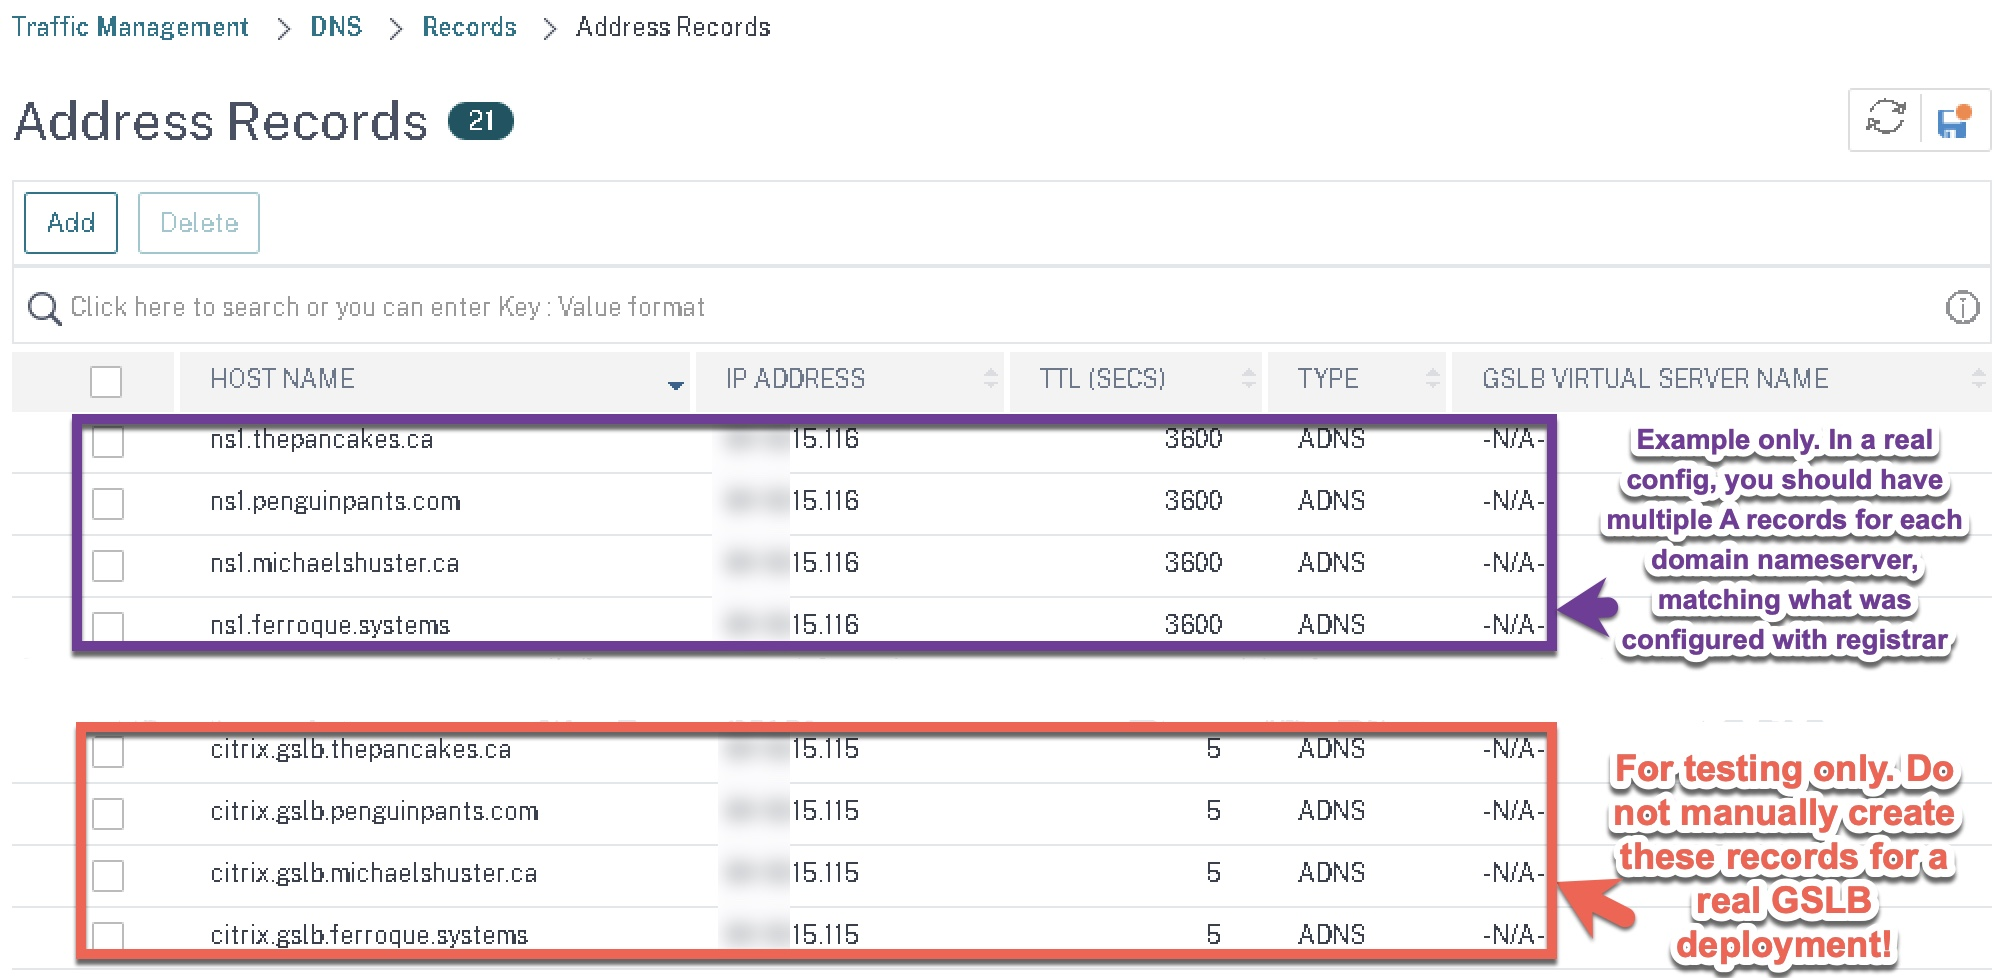 Citrix NetScaler ADC GSLB host A records example